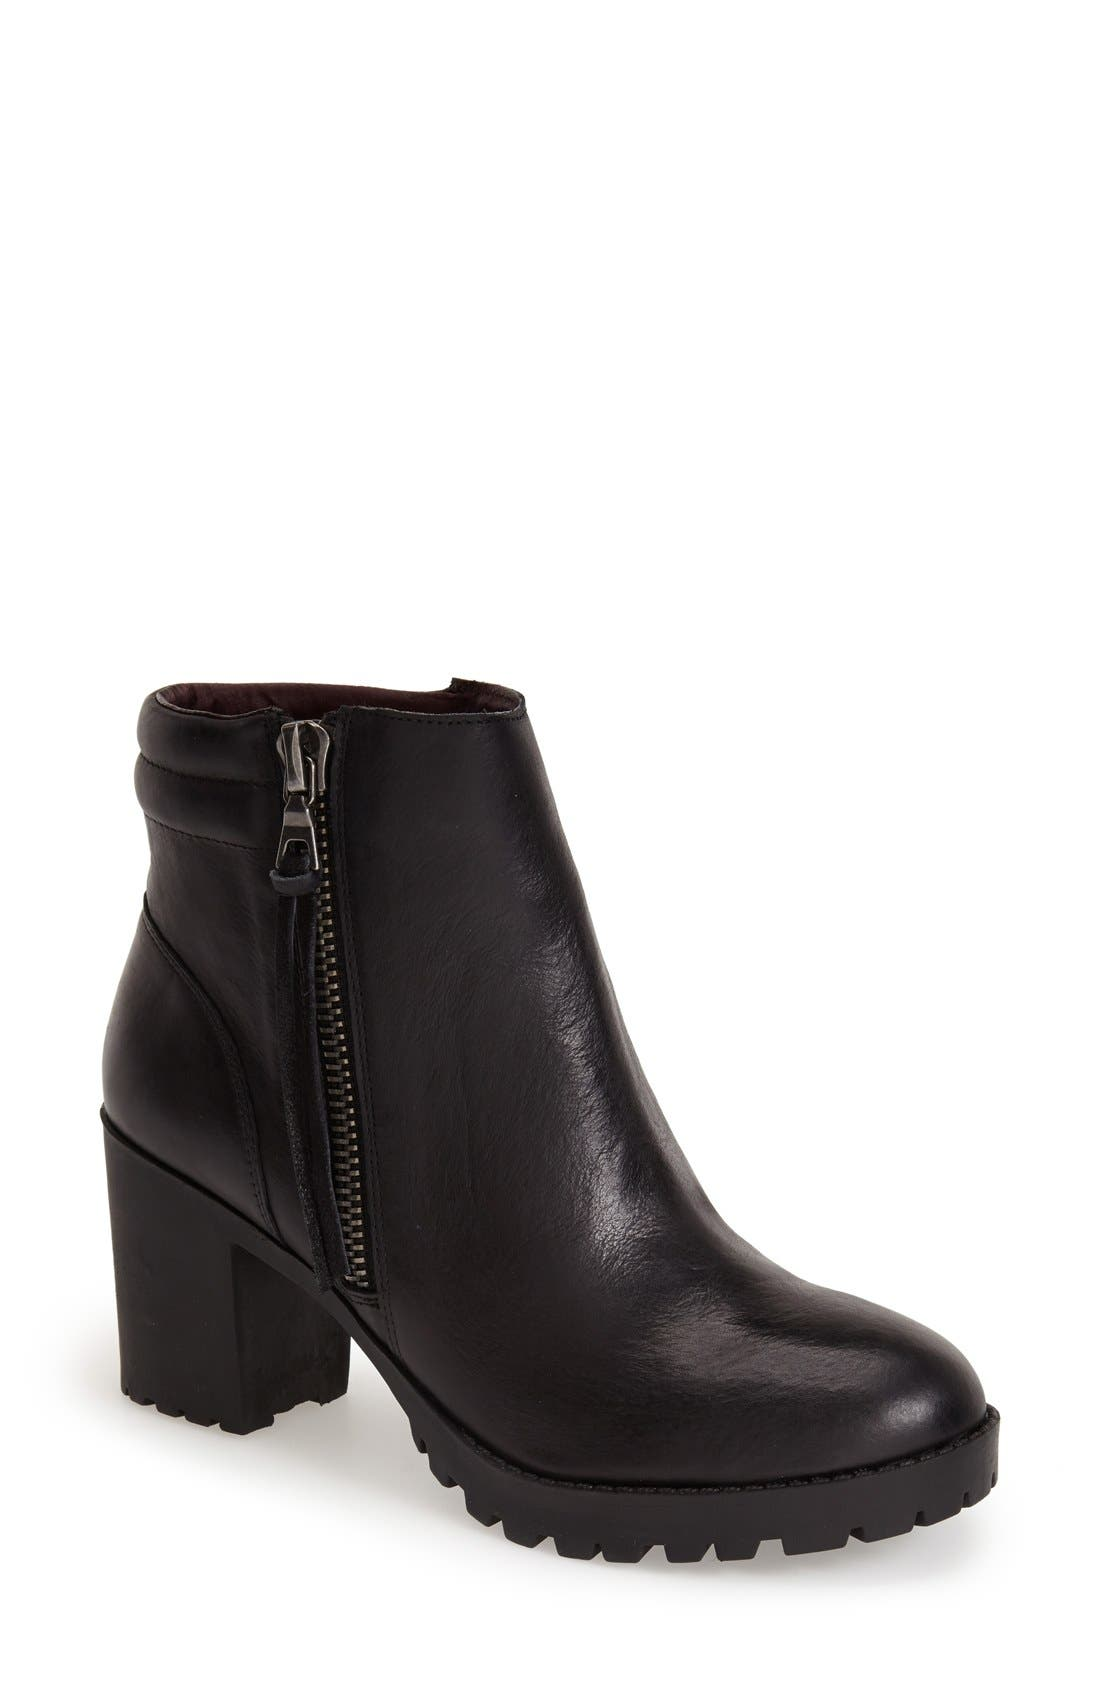 STEVE MADDEN 'Norwayy' Bootie, Main, color, 001